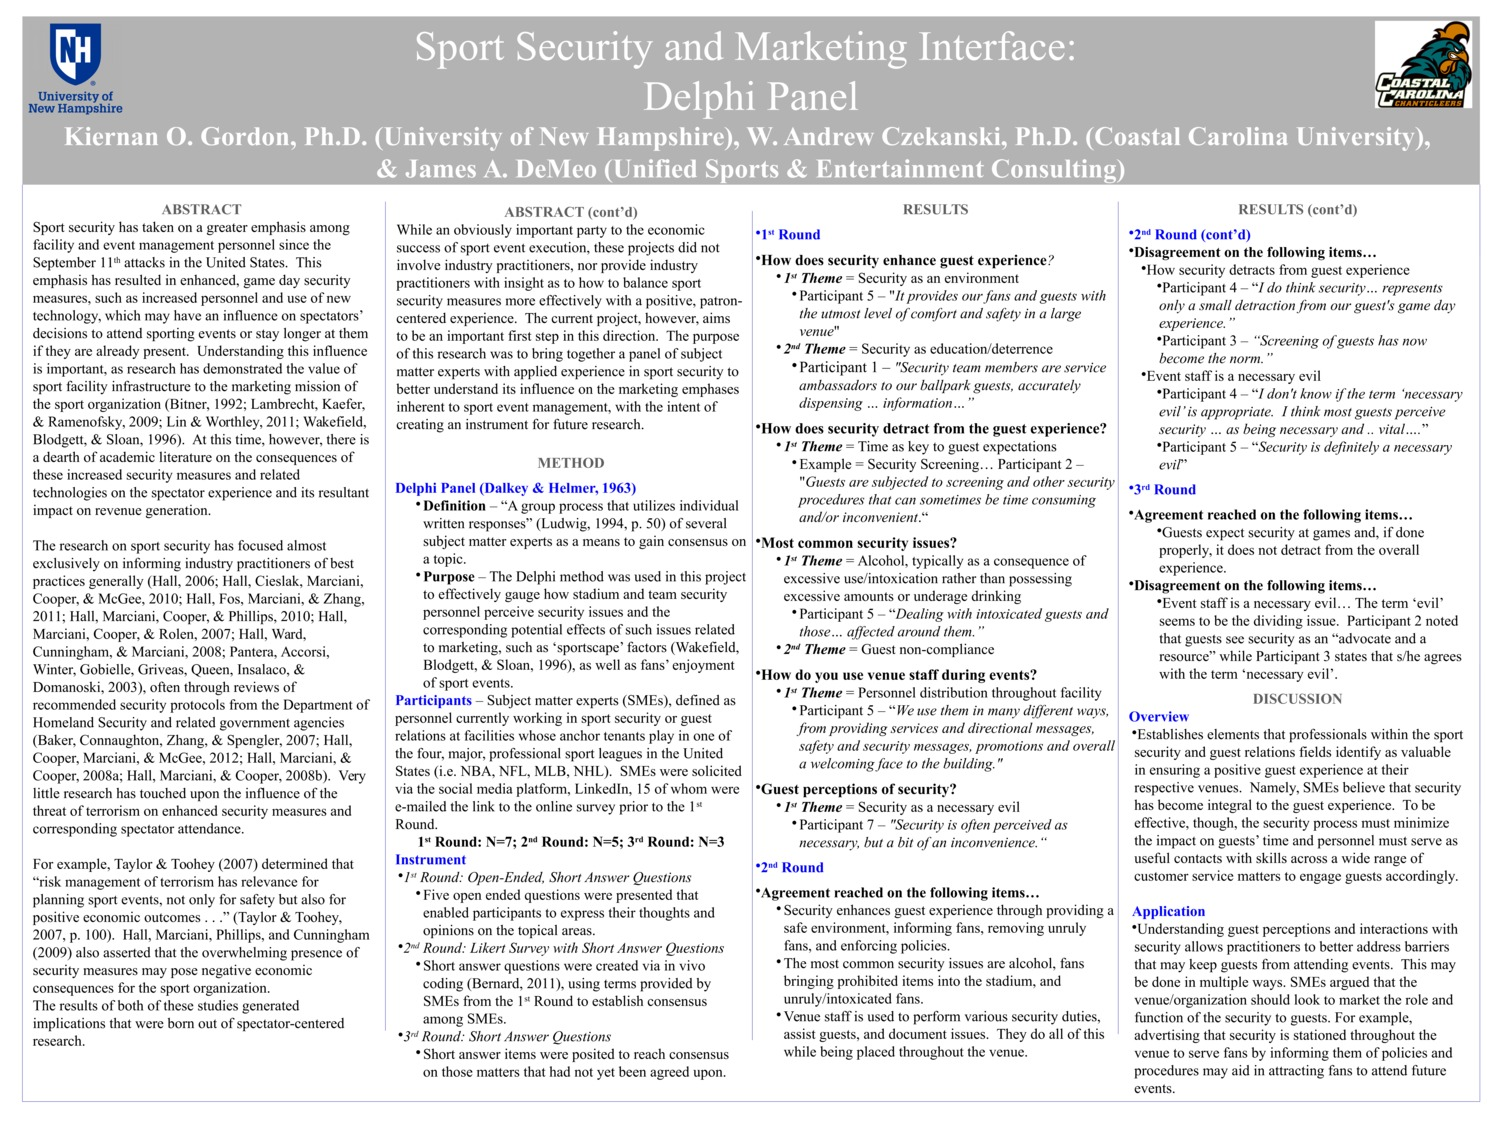 Sport Security And Marketing Interface: Delphi Panel by kog2003